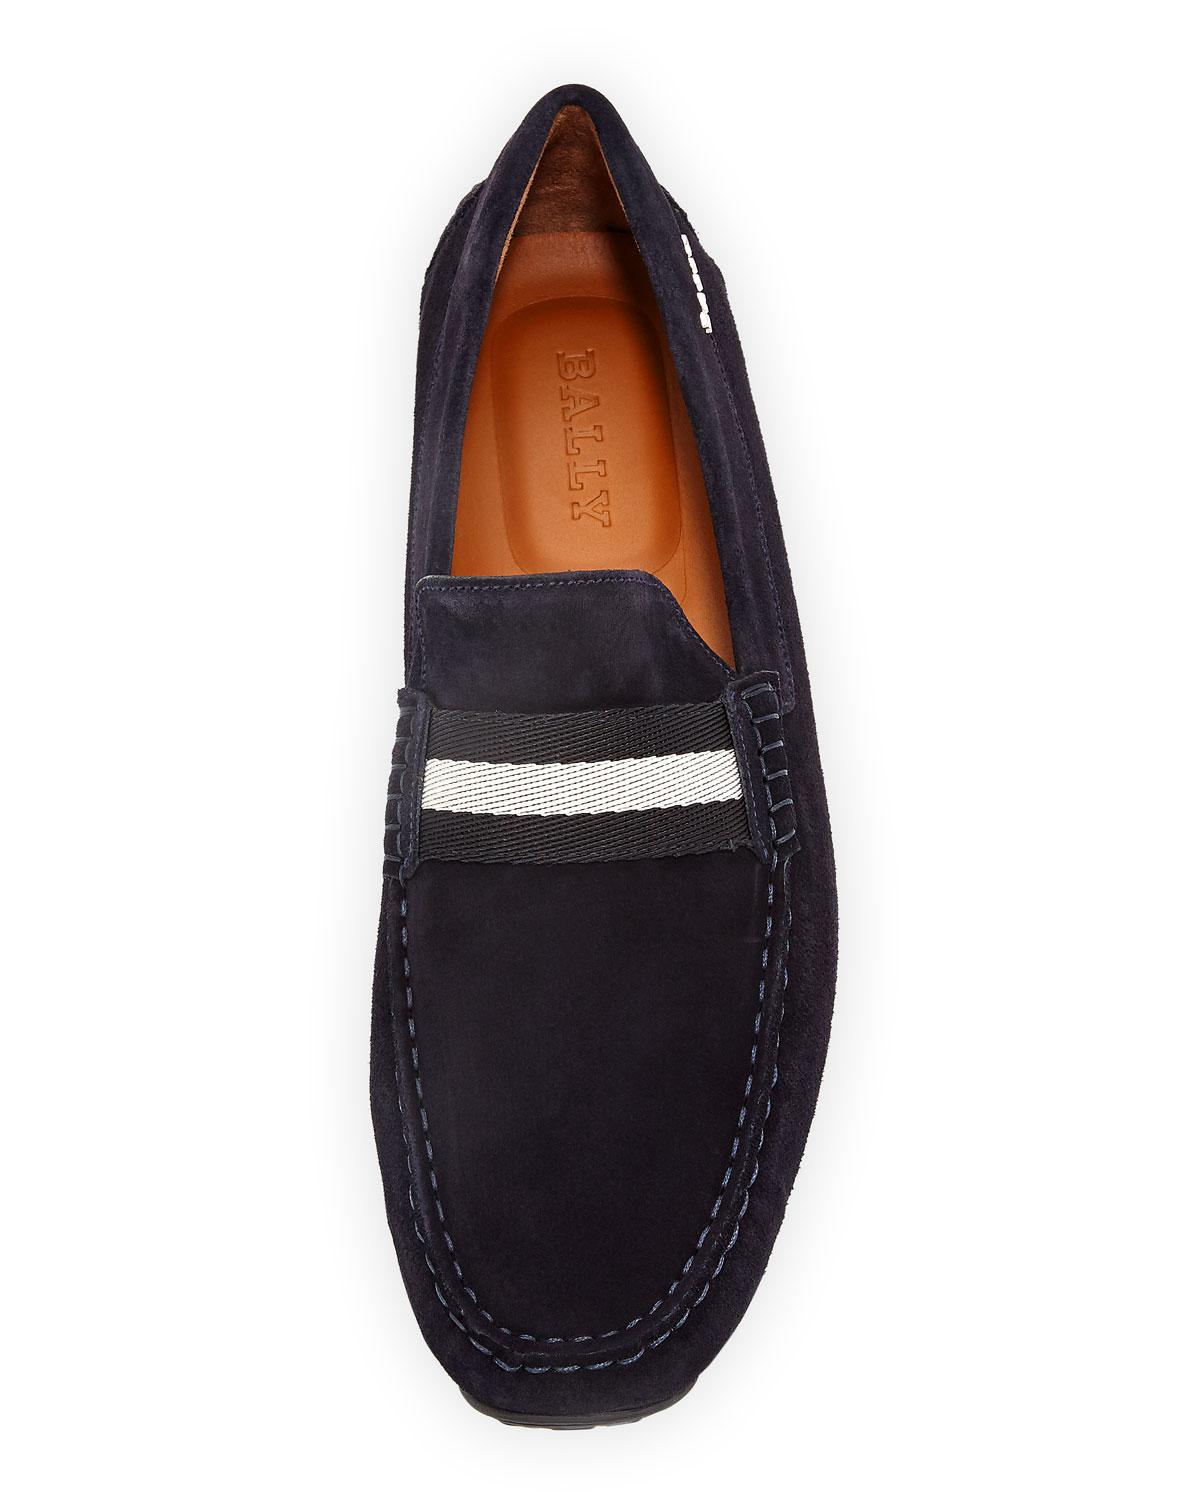 ed551ce0d1e Lyst - Bally Pearce Suede Leather Driver in Blue for Men - Save 17%